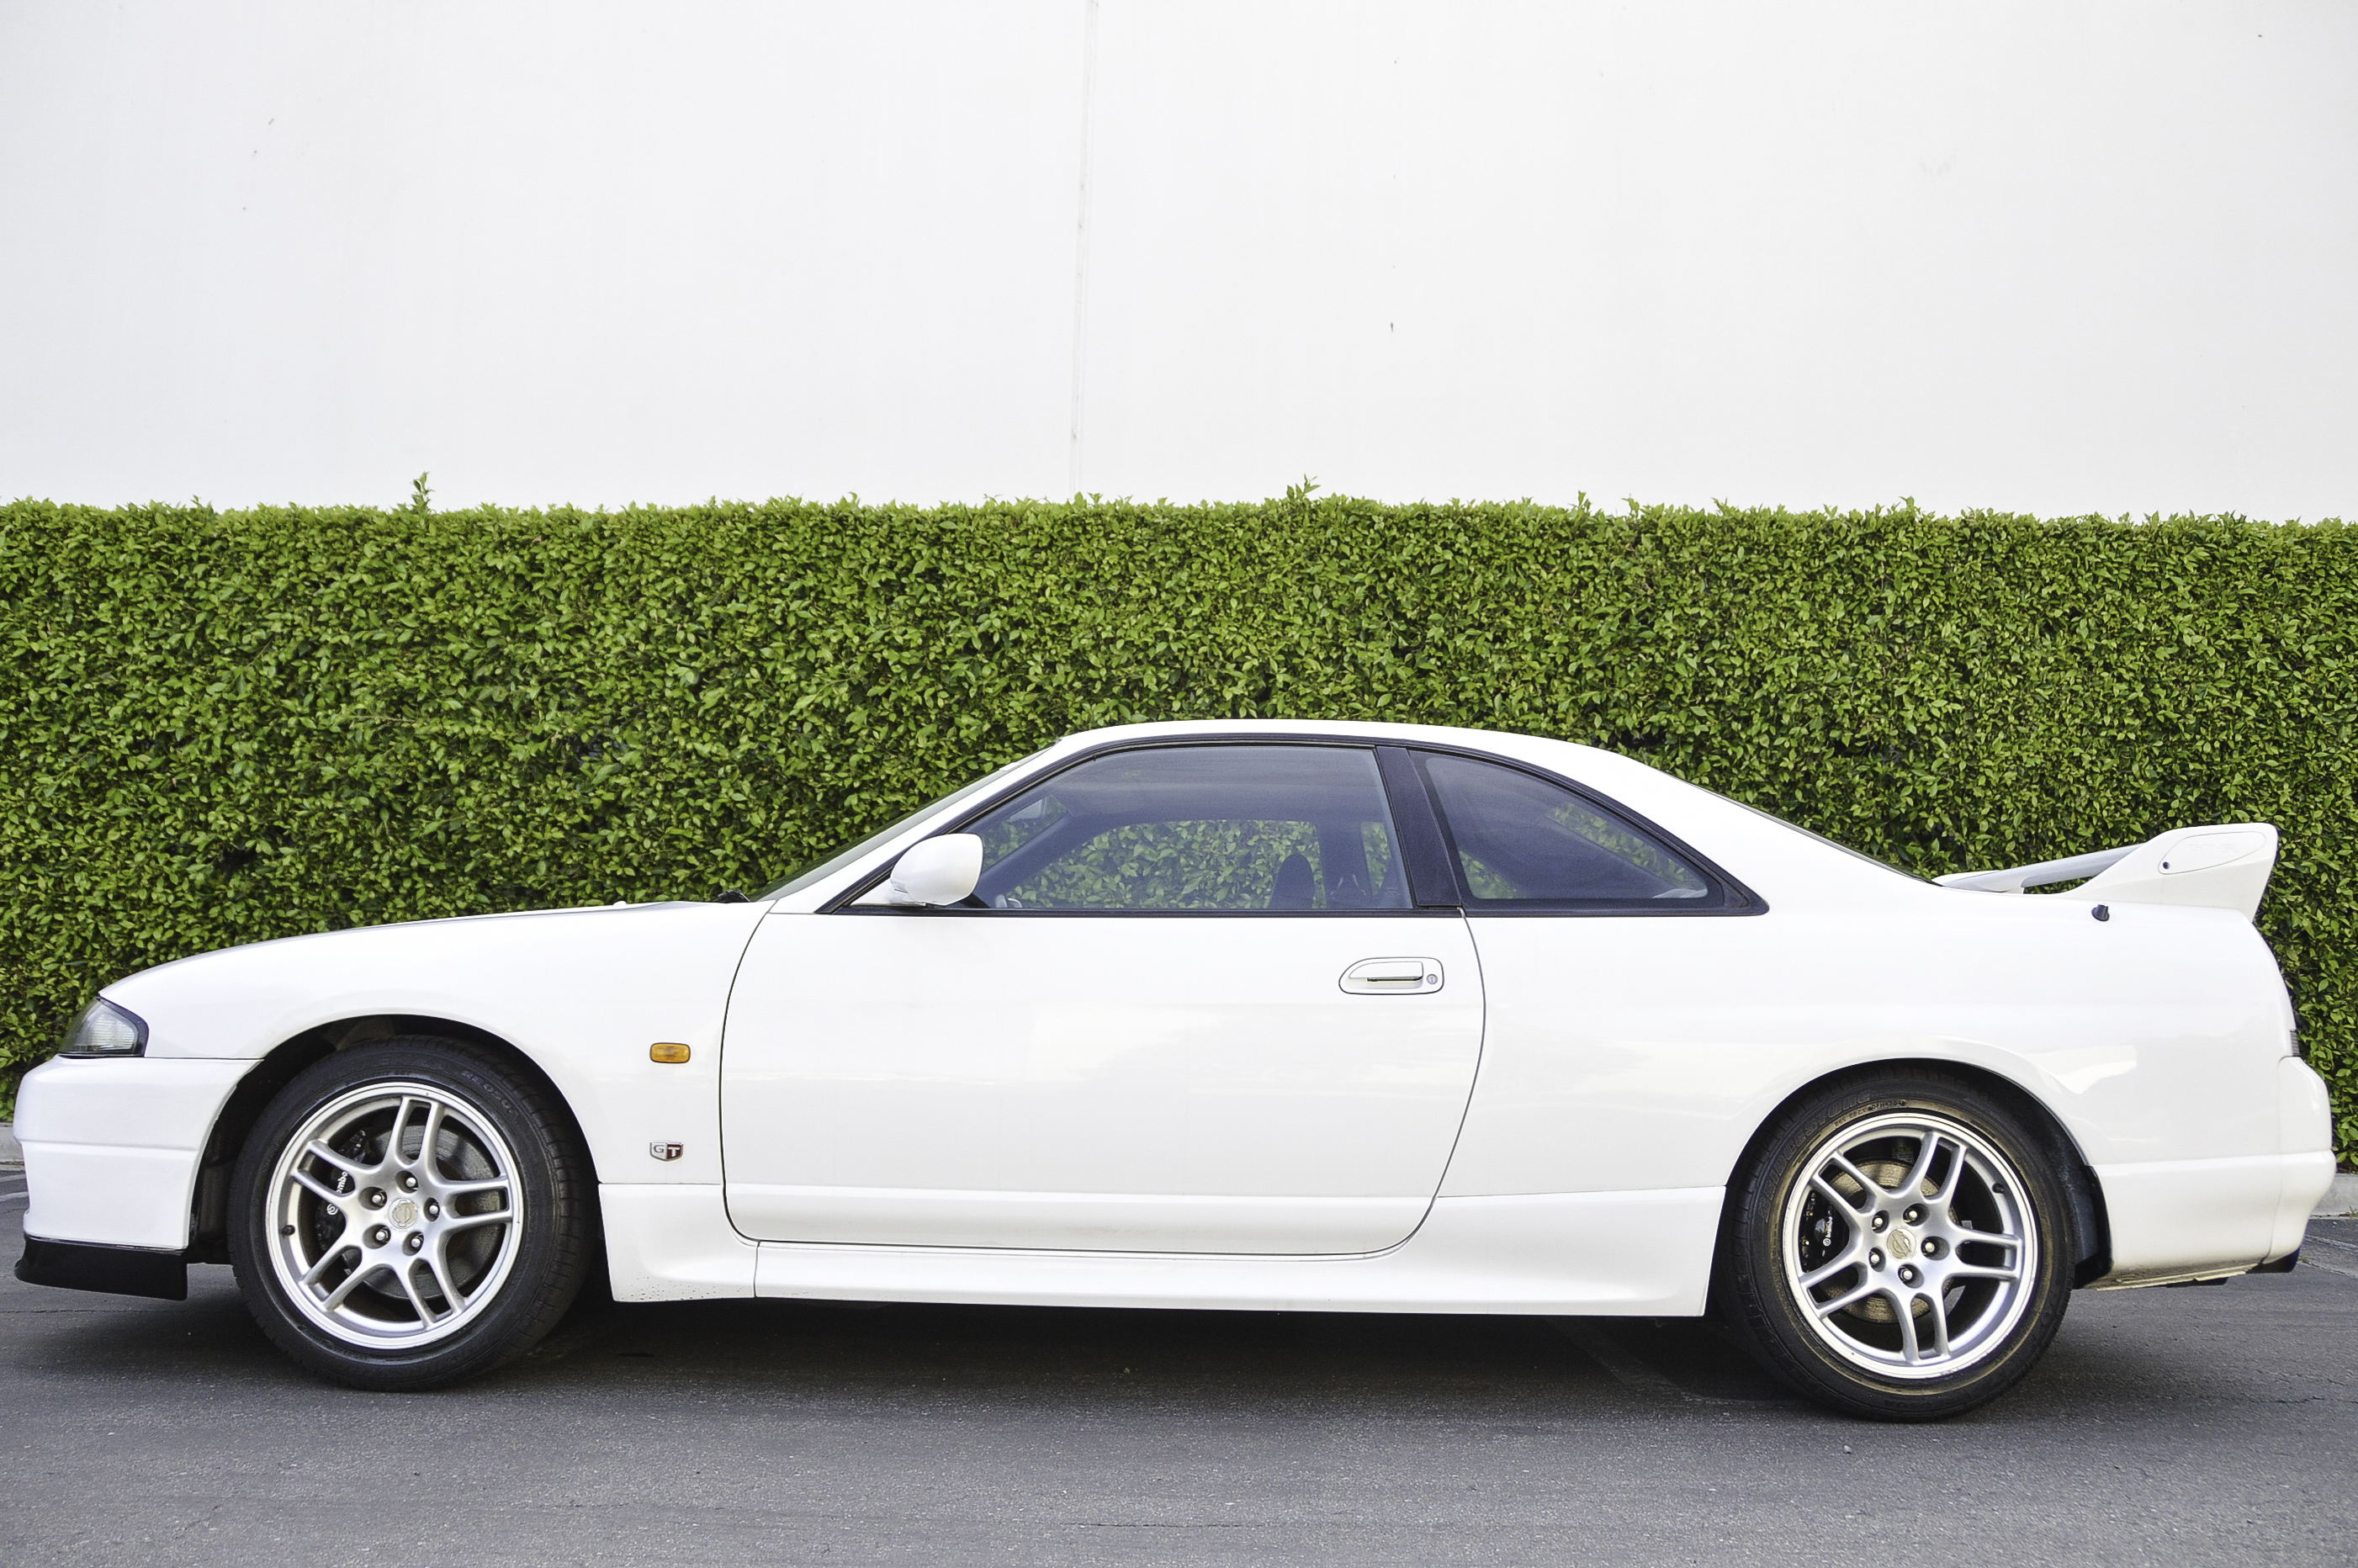 What wheels fit on an R33 GT-R?